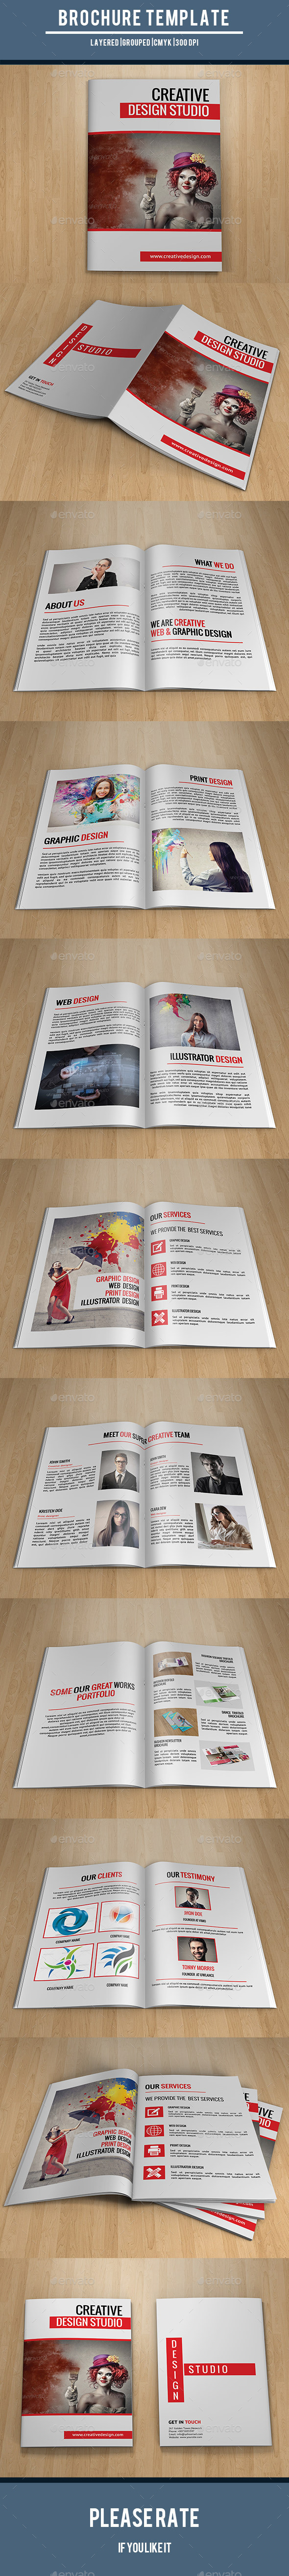 Design Studio Brochure-V185